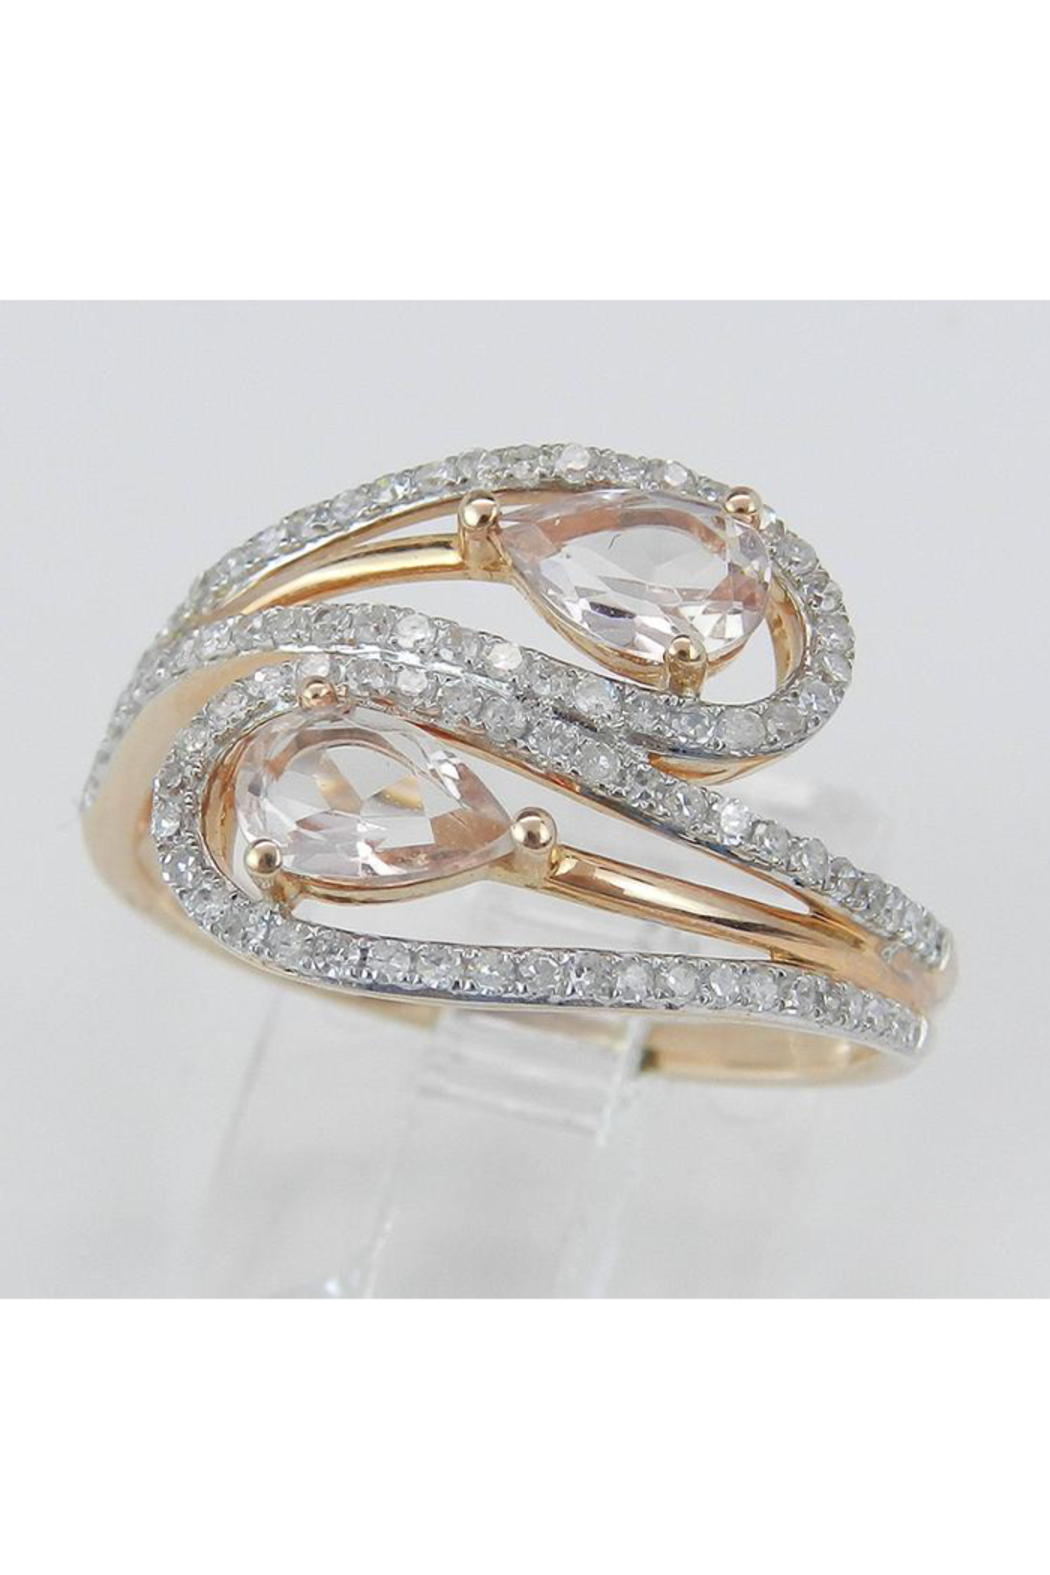 Margolin & Co 14K Rose Gold Diamond and Morganite Cocktail Bypass Ring Size 7.25 Beryl Gem FREE Sizing - Back Cropped Image